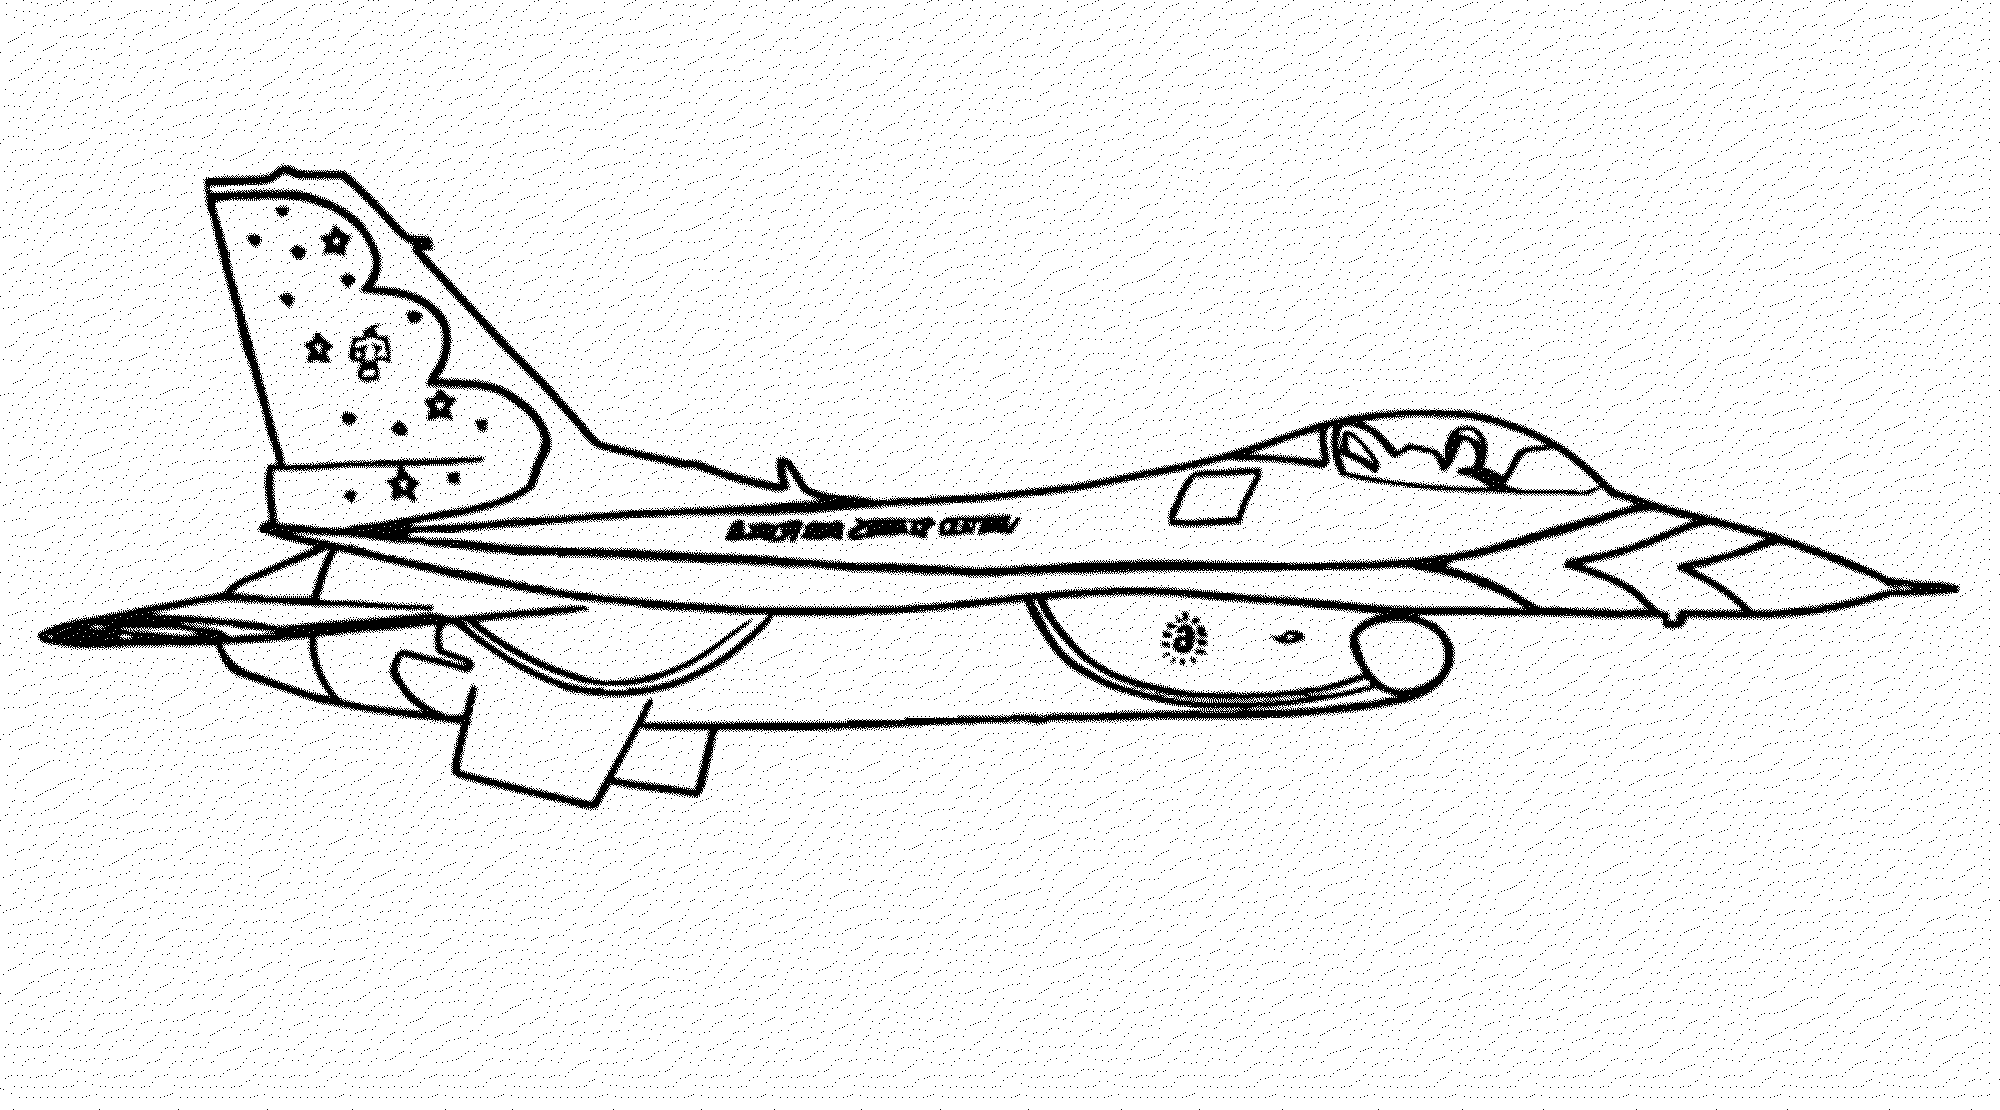 printable airplane coloring pages print download the sophisticated transportation of coloring pages airplane printable